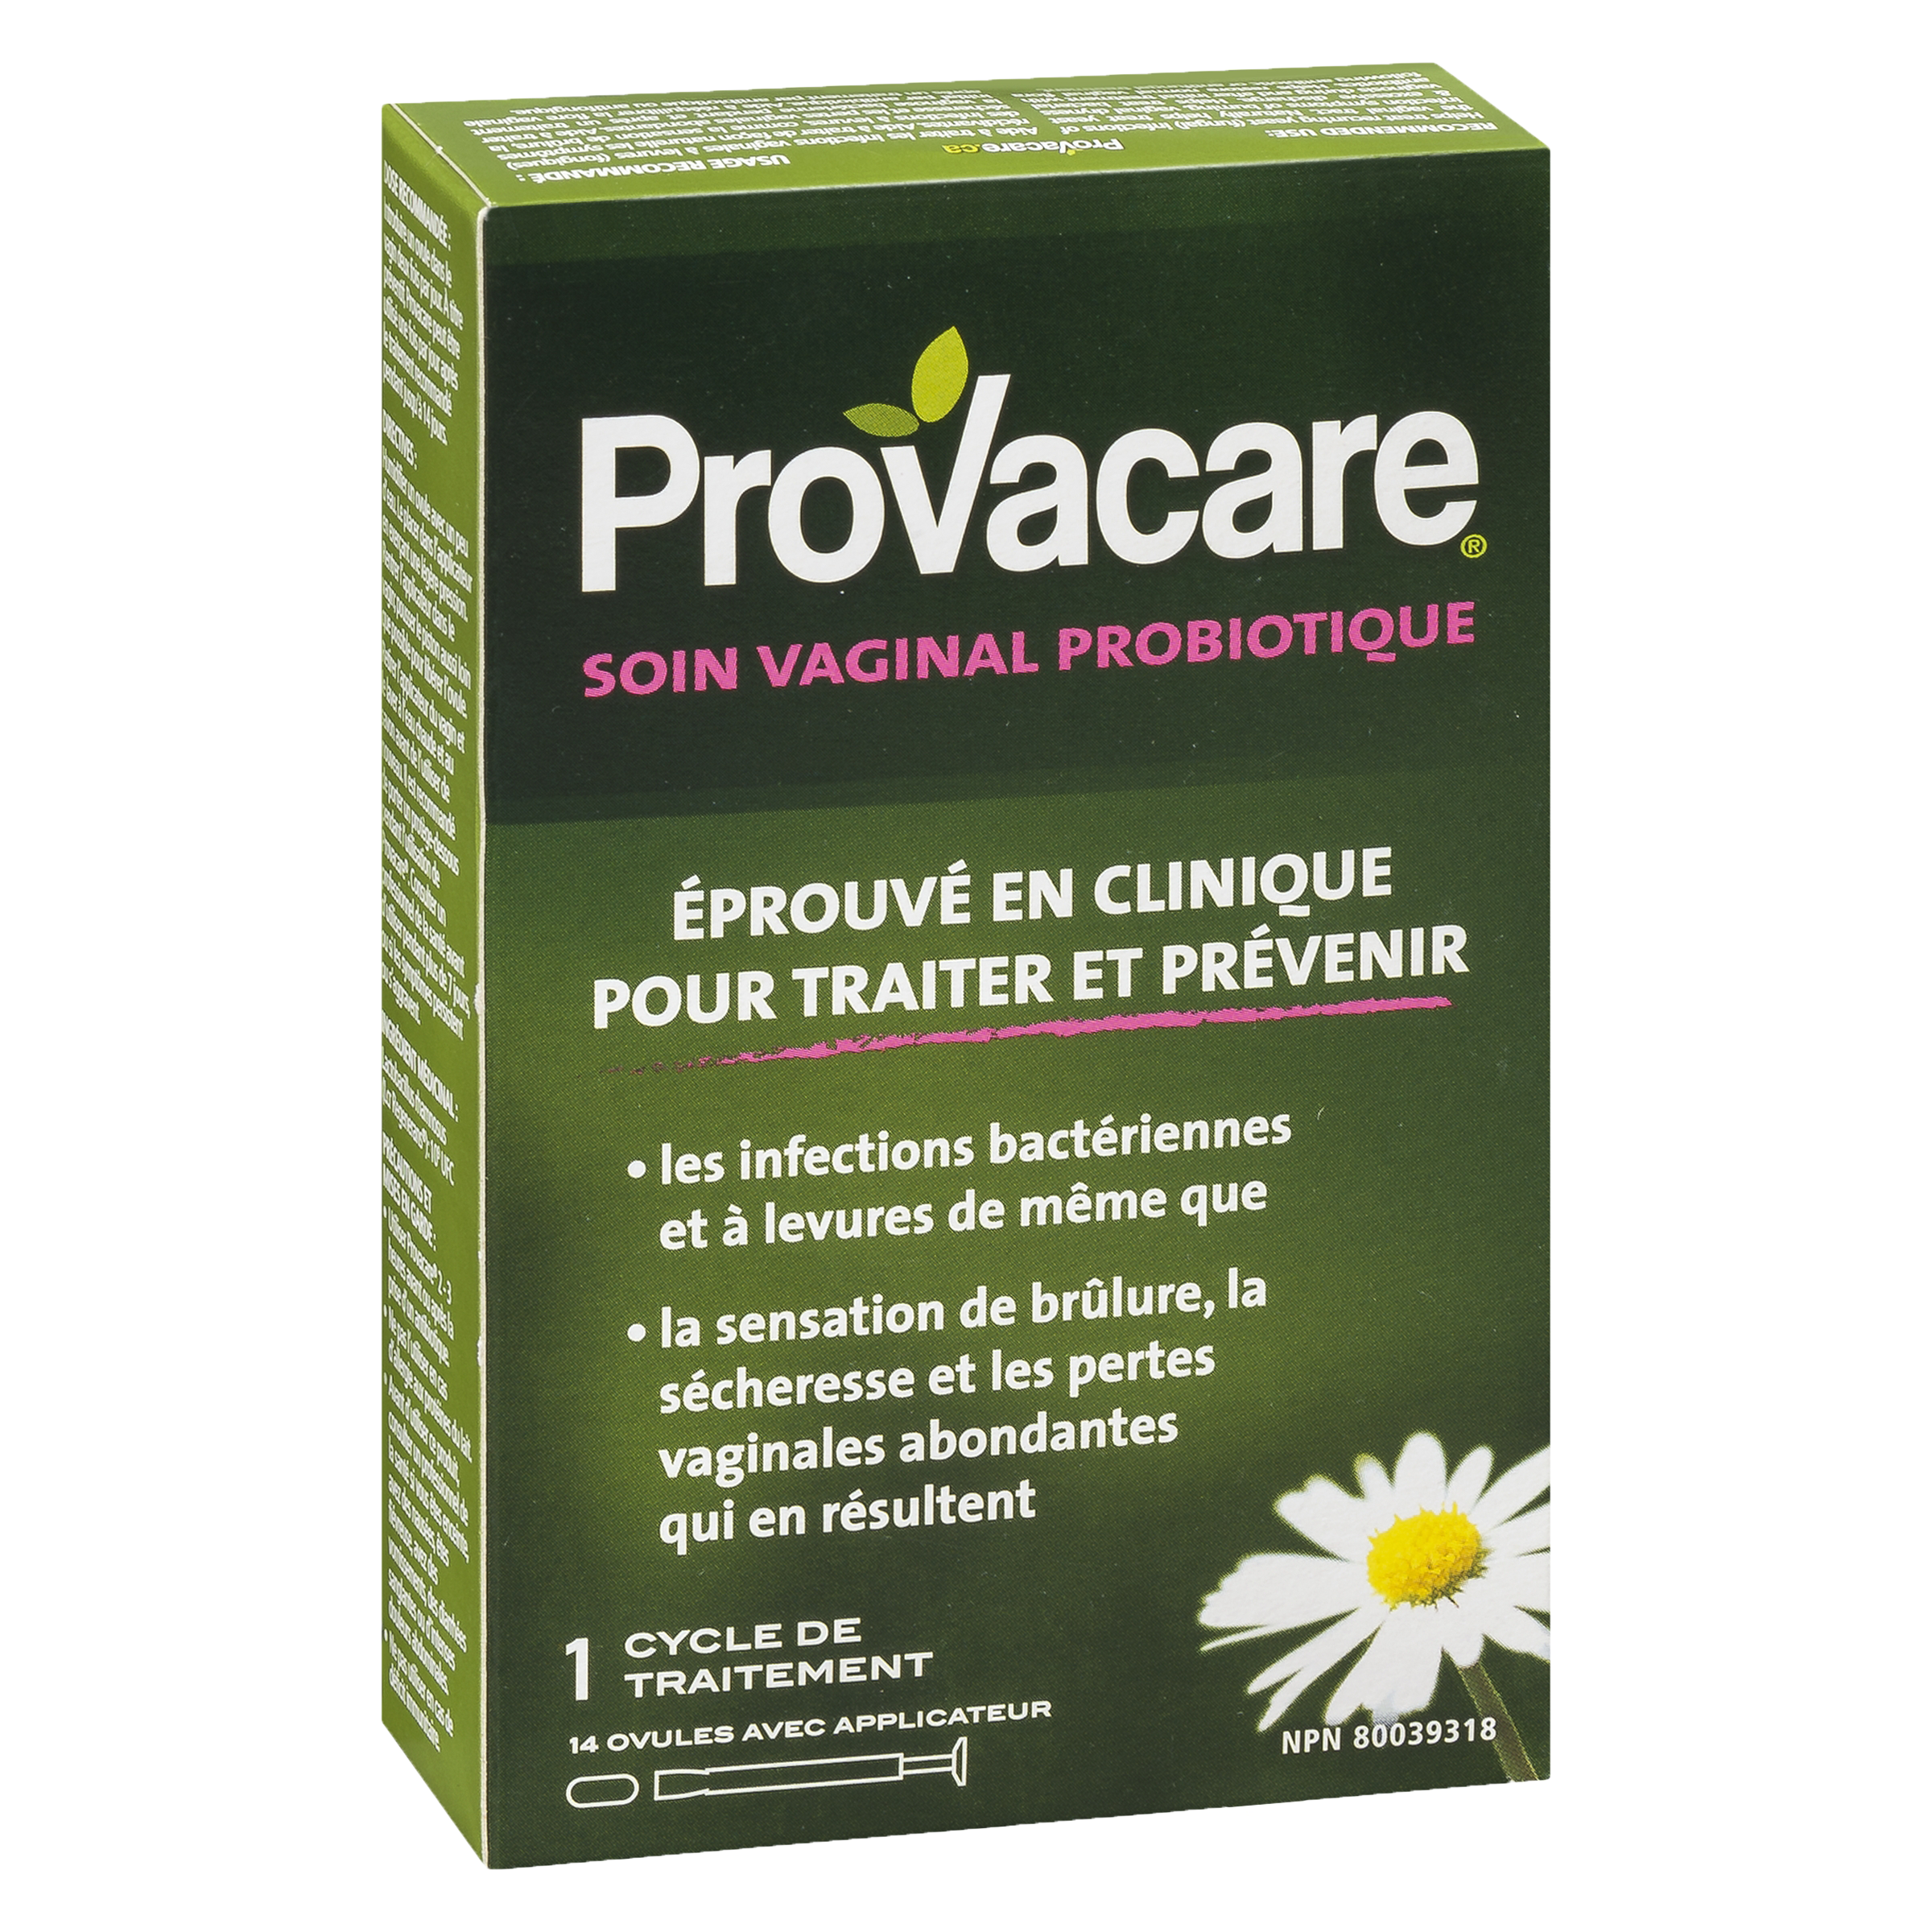 provacare-french